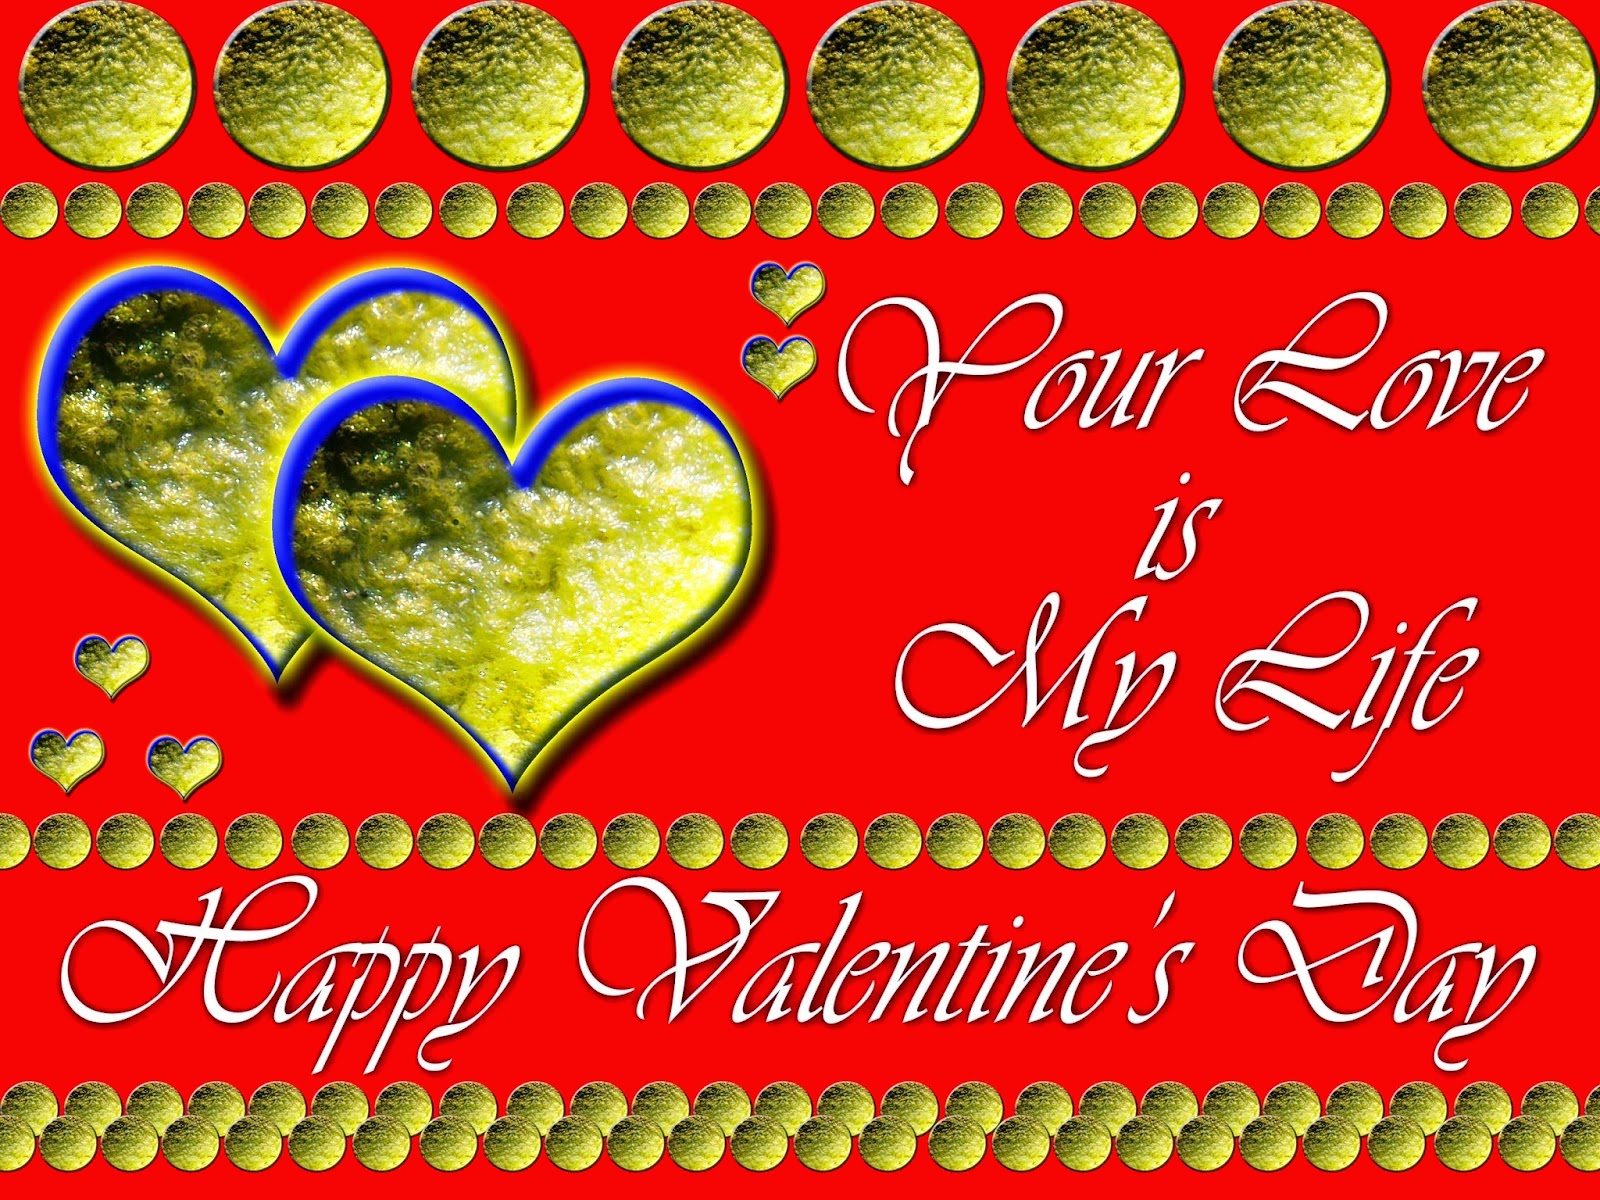 Happy Valentines Day Images Happy Valentines day 2015 Quotes – Valentine Card Wishes